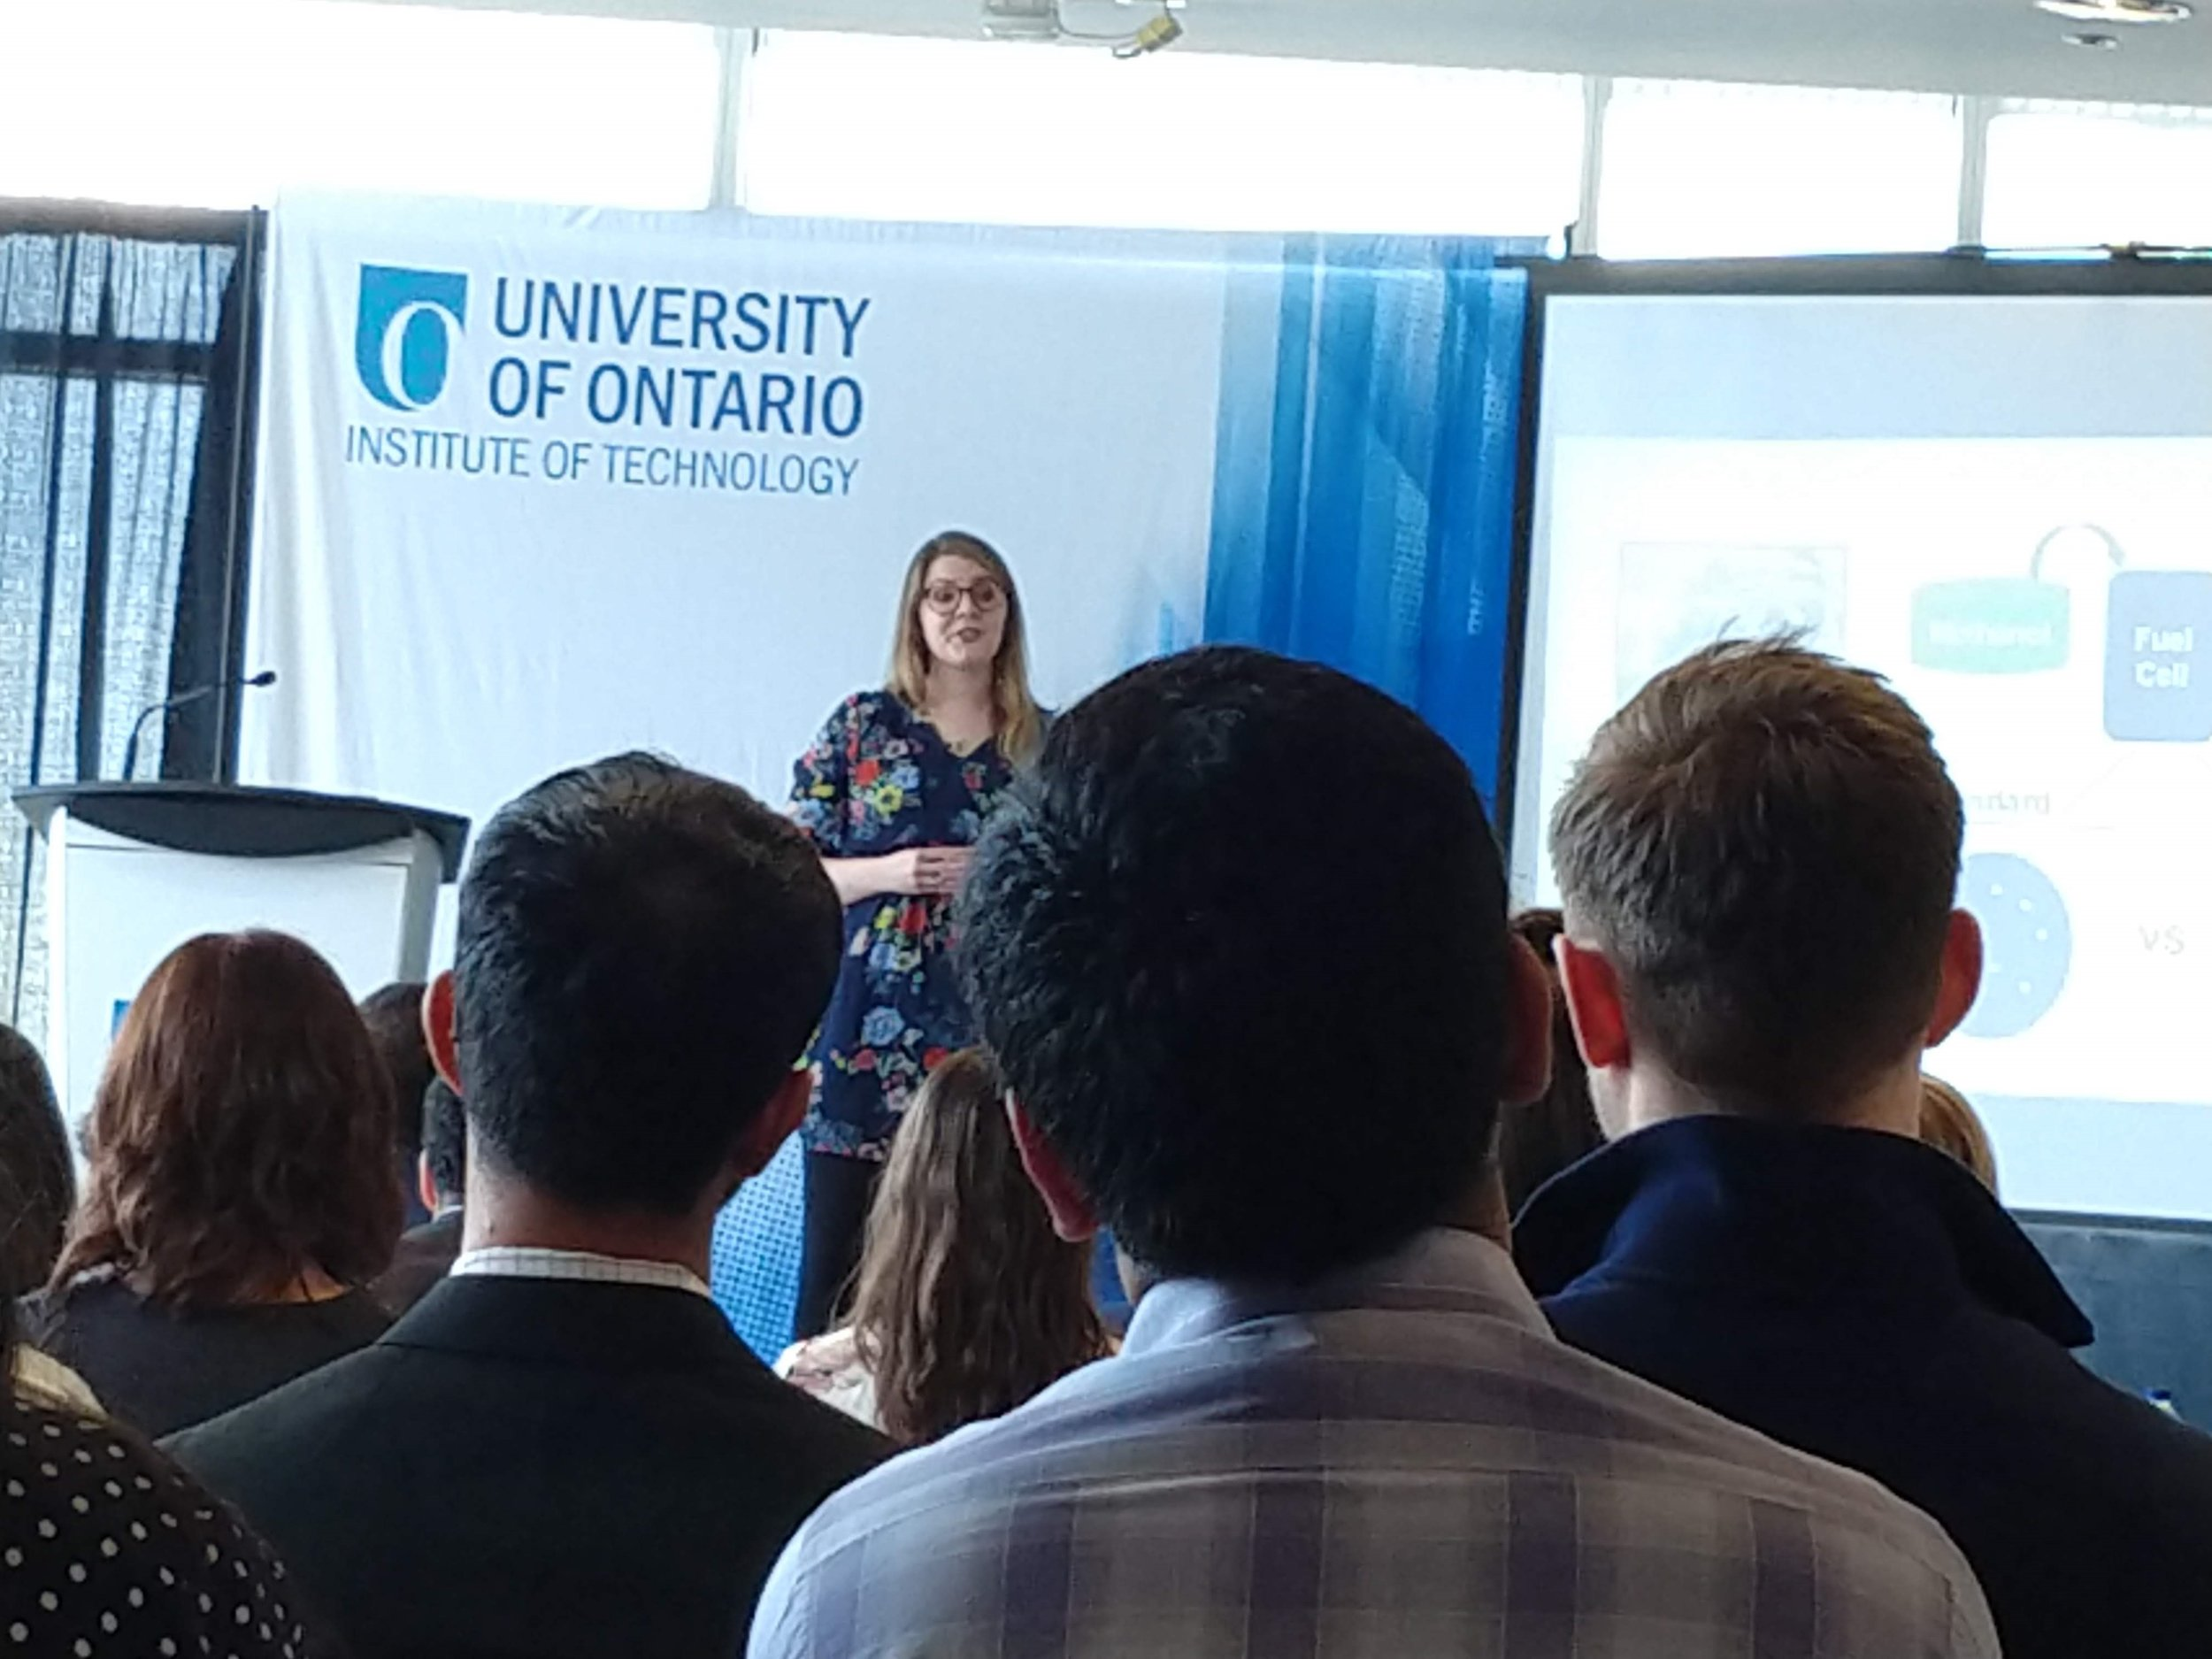 Great presentation Allison! Three Minutes Thesis Competition event, UOIT, March 19, 2019.